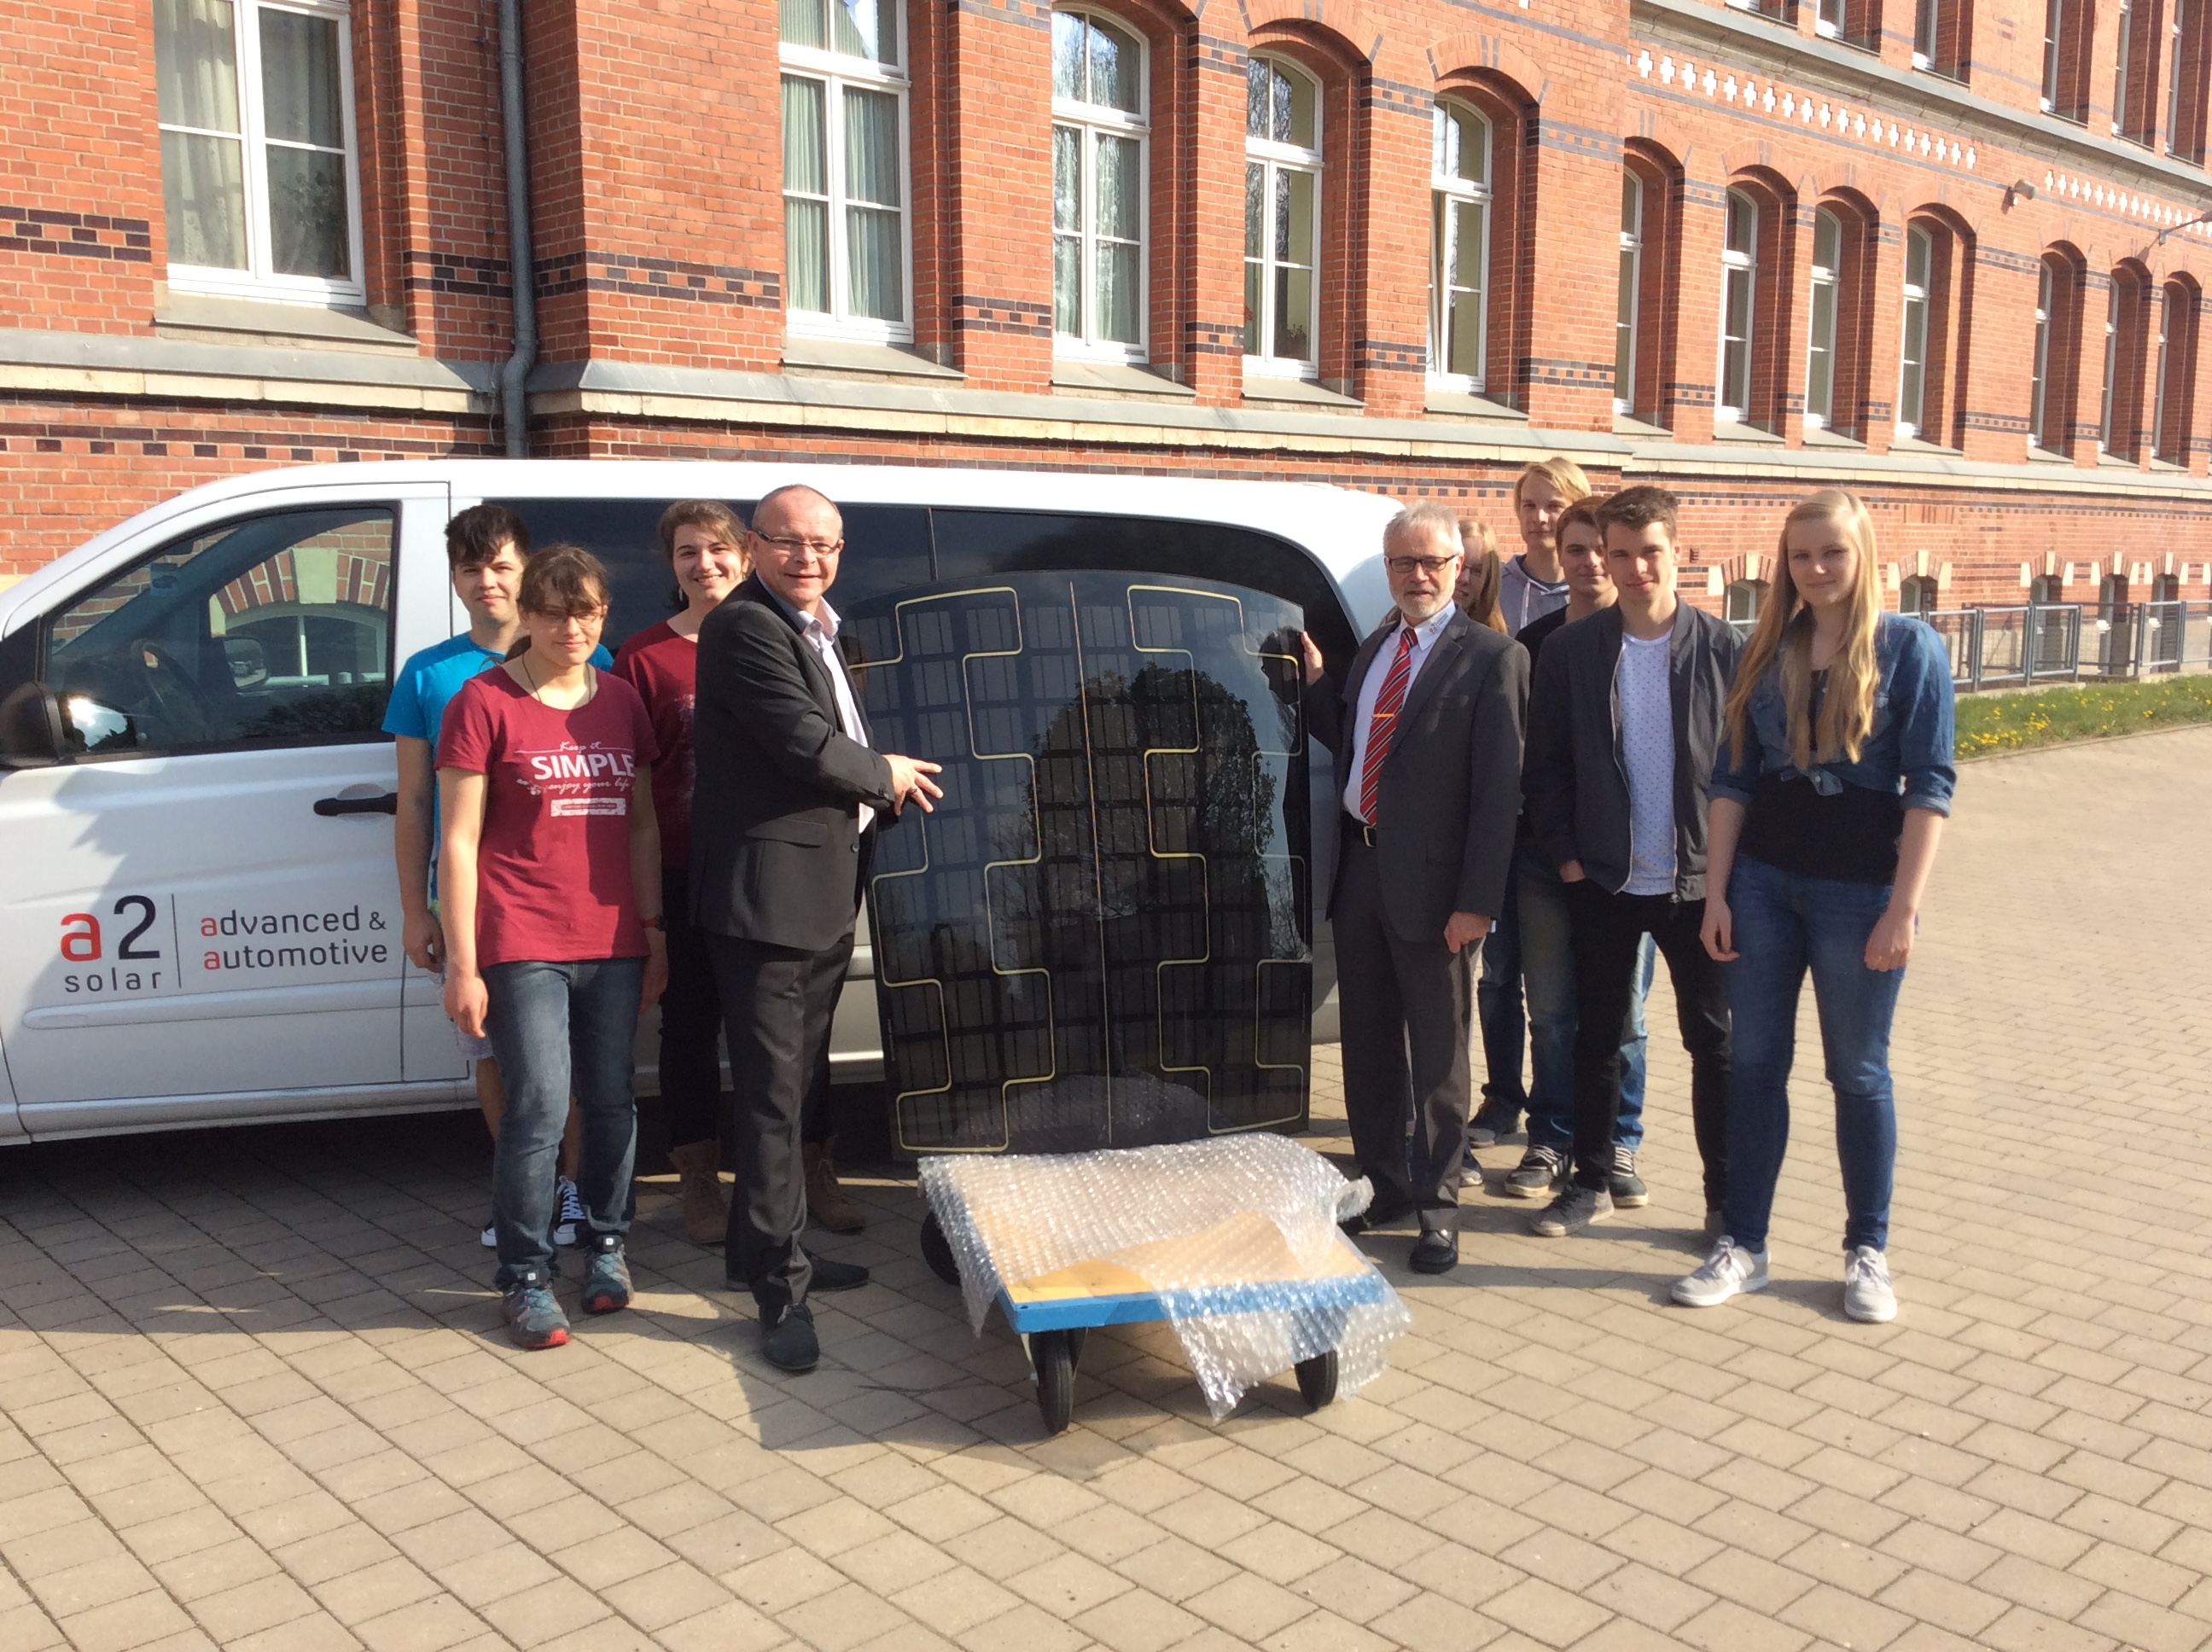 a2-solar provides solar car roof modules for Thuringian schools to teach on photovoltaic technology and solar systems in technical college classes. The CEO of a2-solar himself, Mr. Reinhard Wecker (right), handed over the solar modules to the prinicpal Karsten Pohlemann (left) and some of the 2nd year EDP trainees of the Andreas-Gordon-College in Erfurt.